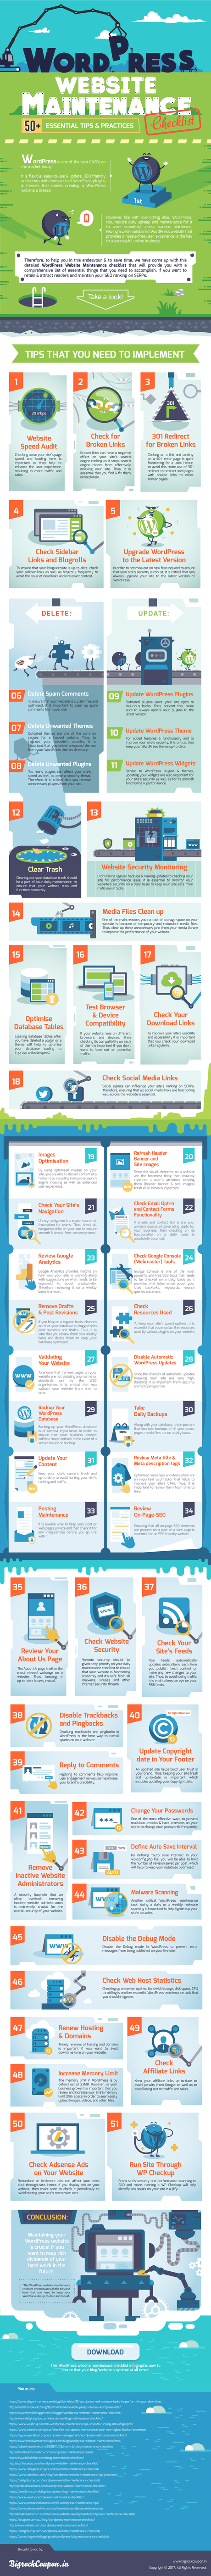 WordPress Website Maintenance – 50+ Useful Tips [Infographic]